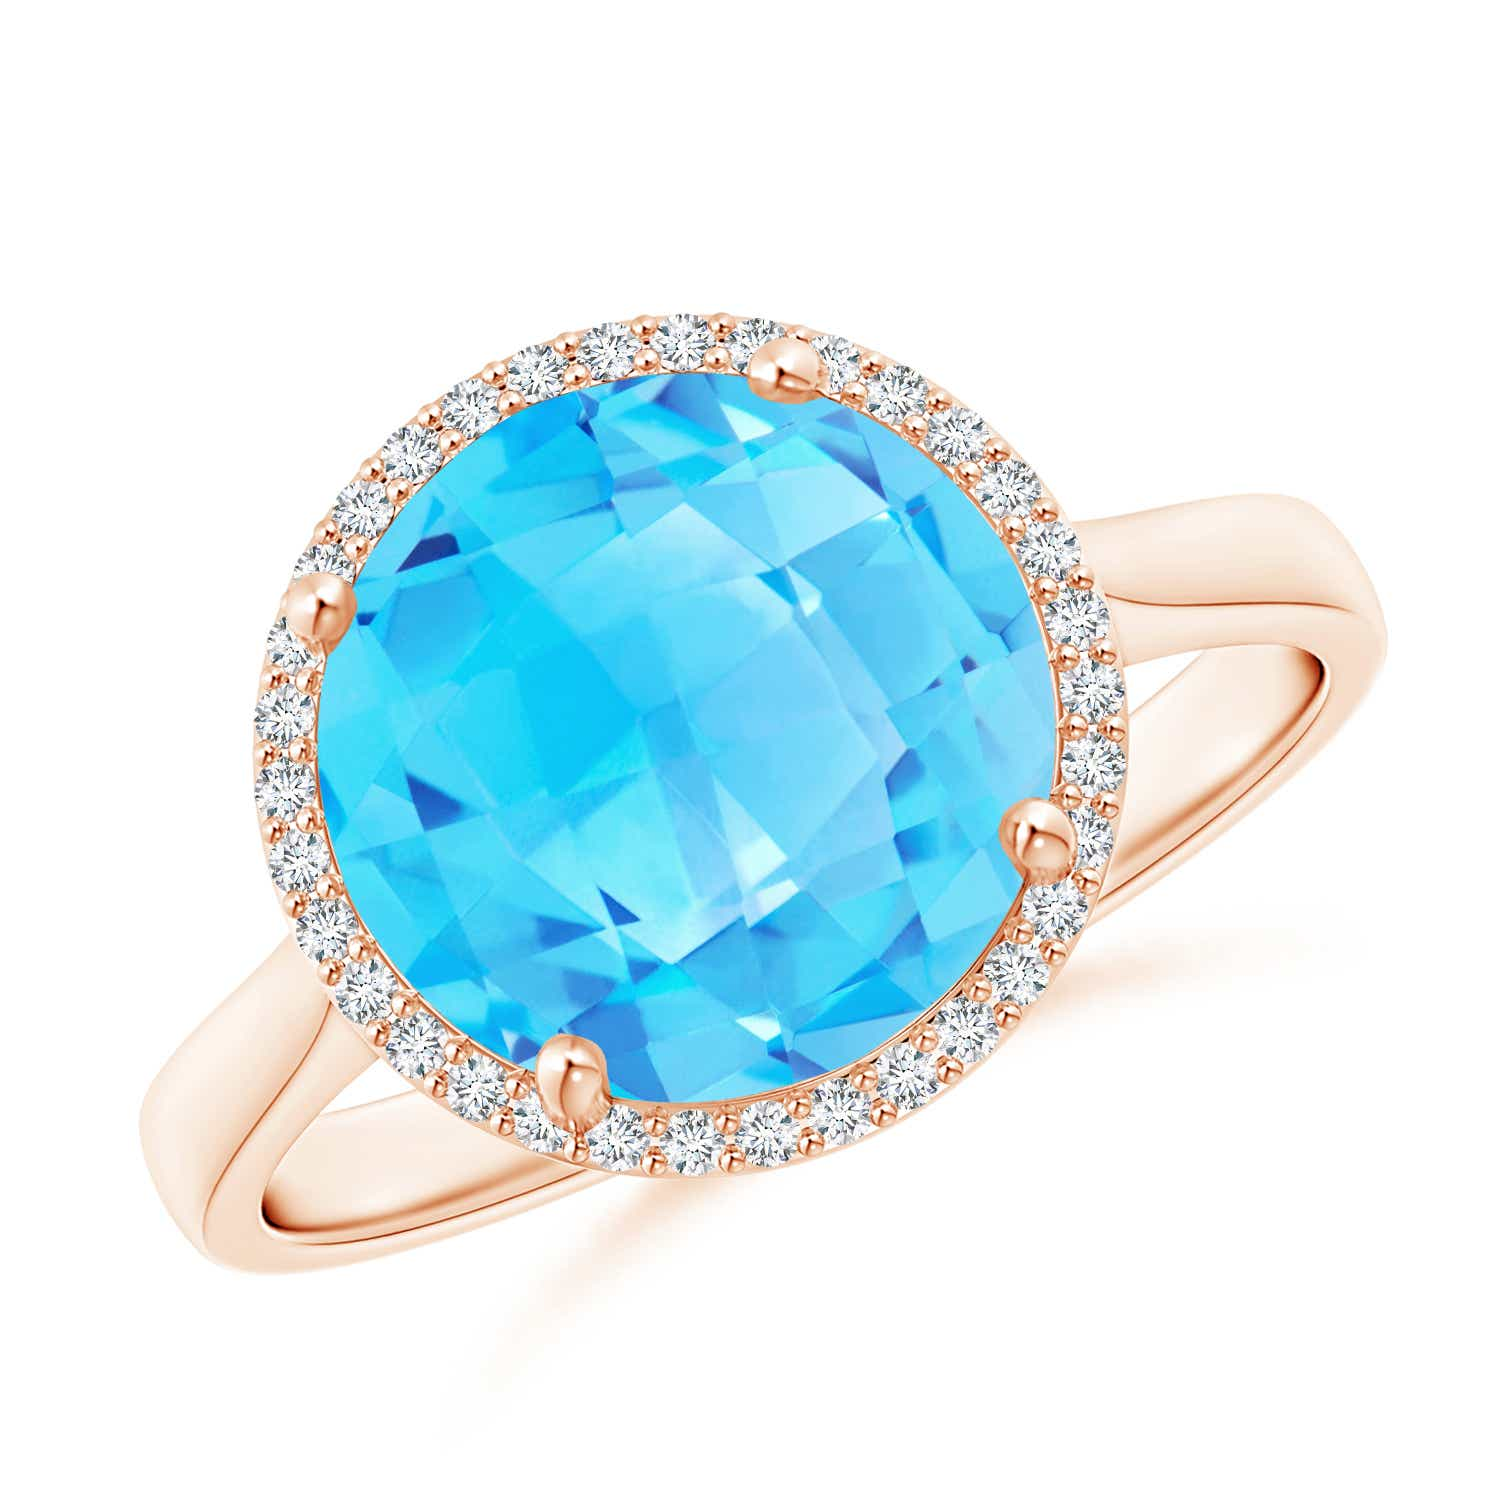 Angara Pear-Shaped Swiss Blue Topaz Cocktail Ring with Diamond Halo fjH5x7